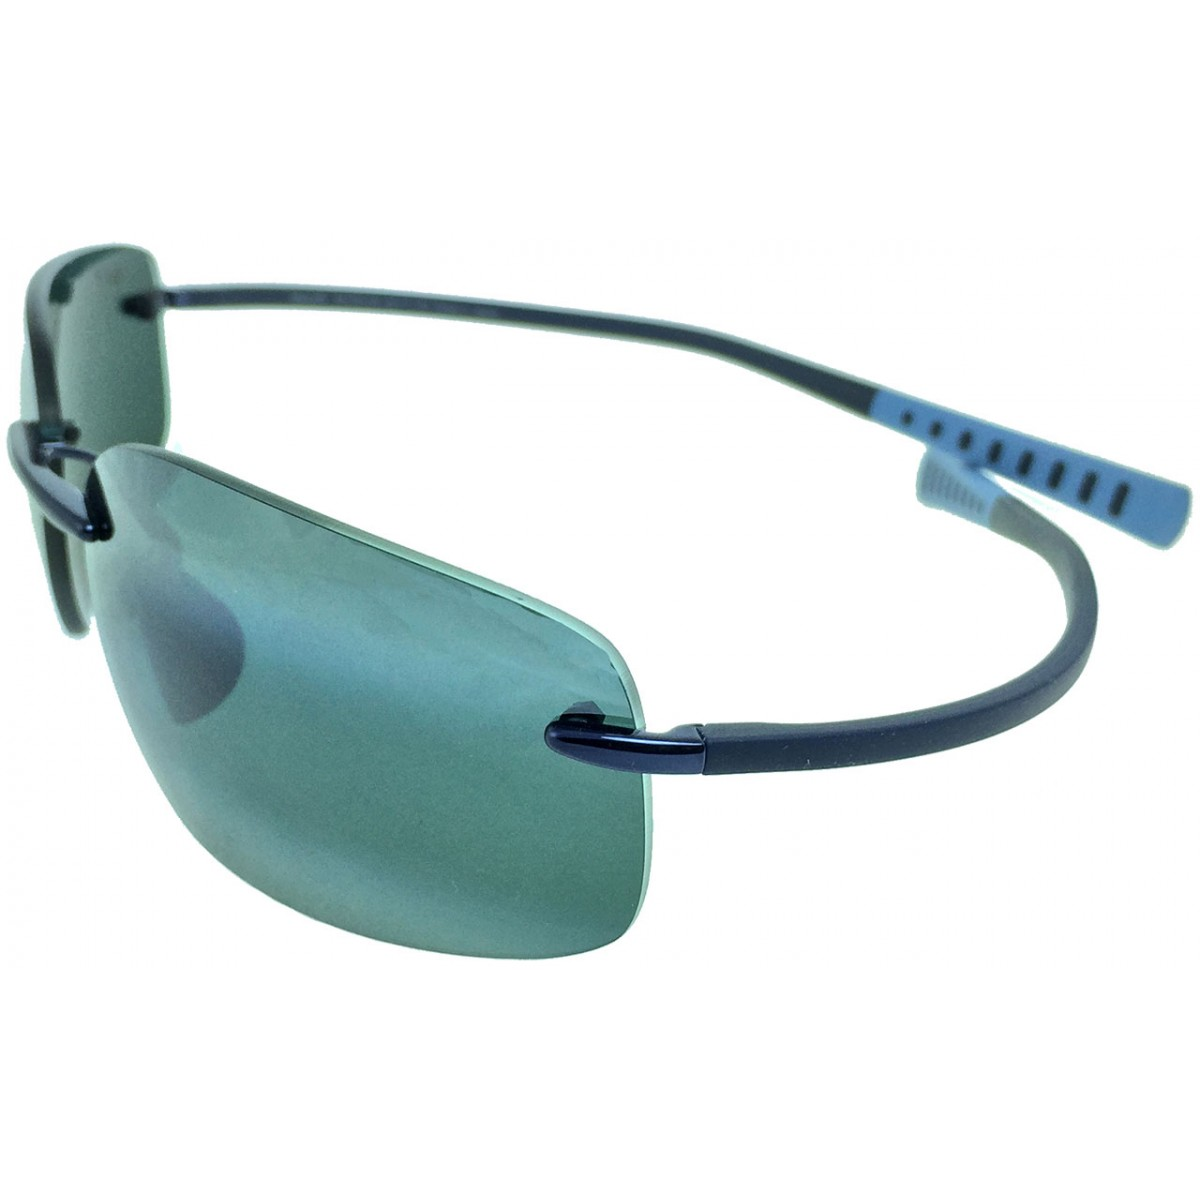 edc38d1dc50d Online Eyeglasses with Customer Service Center in California Maui ...